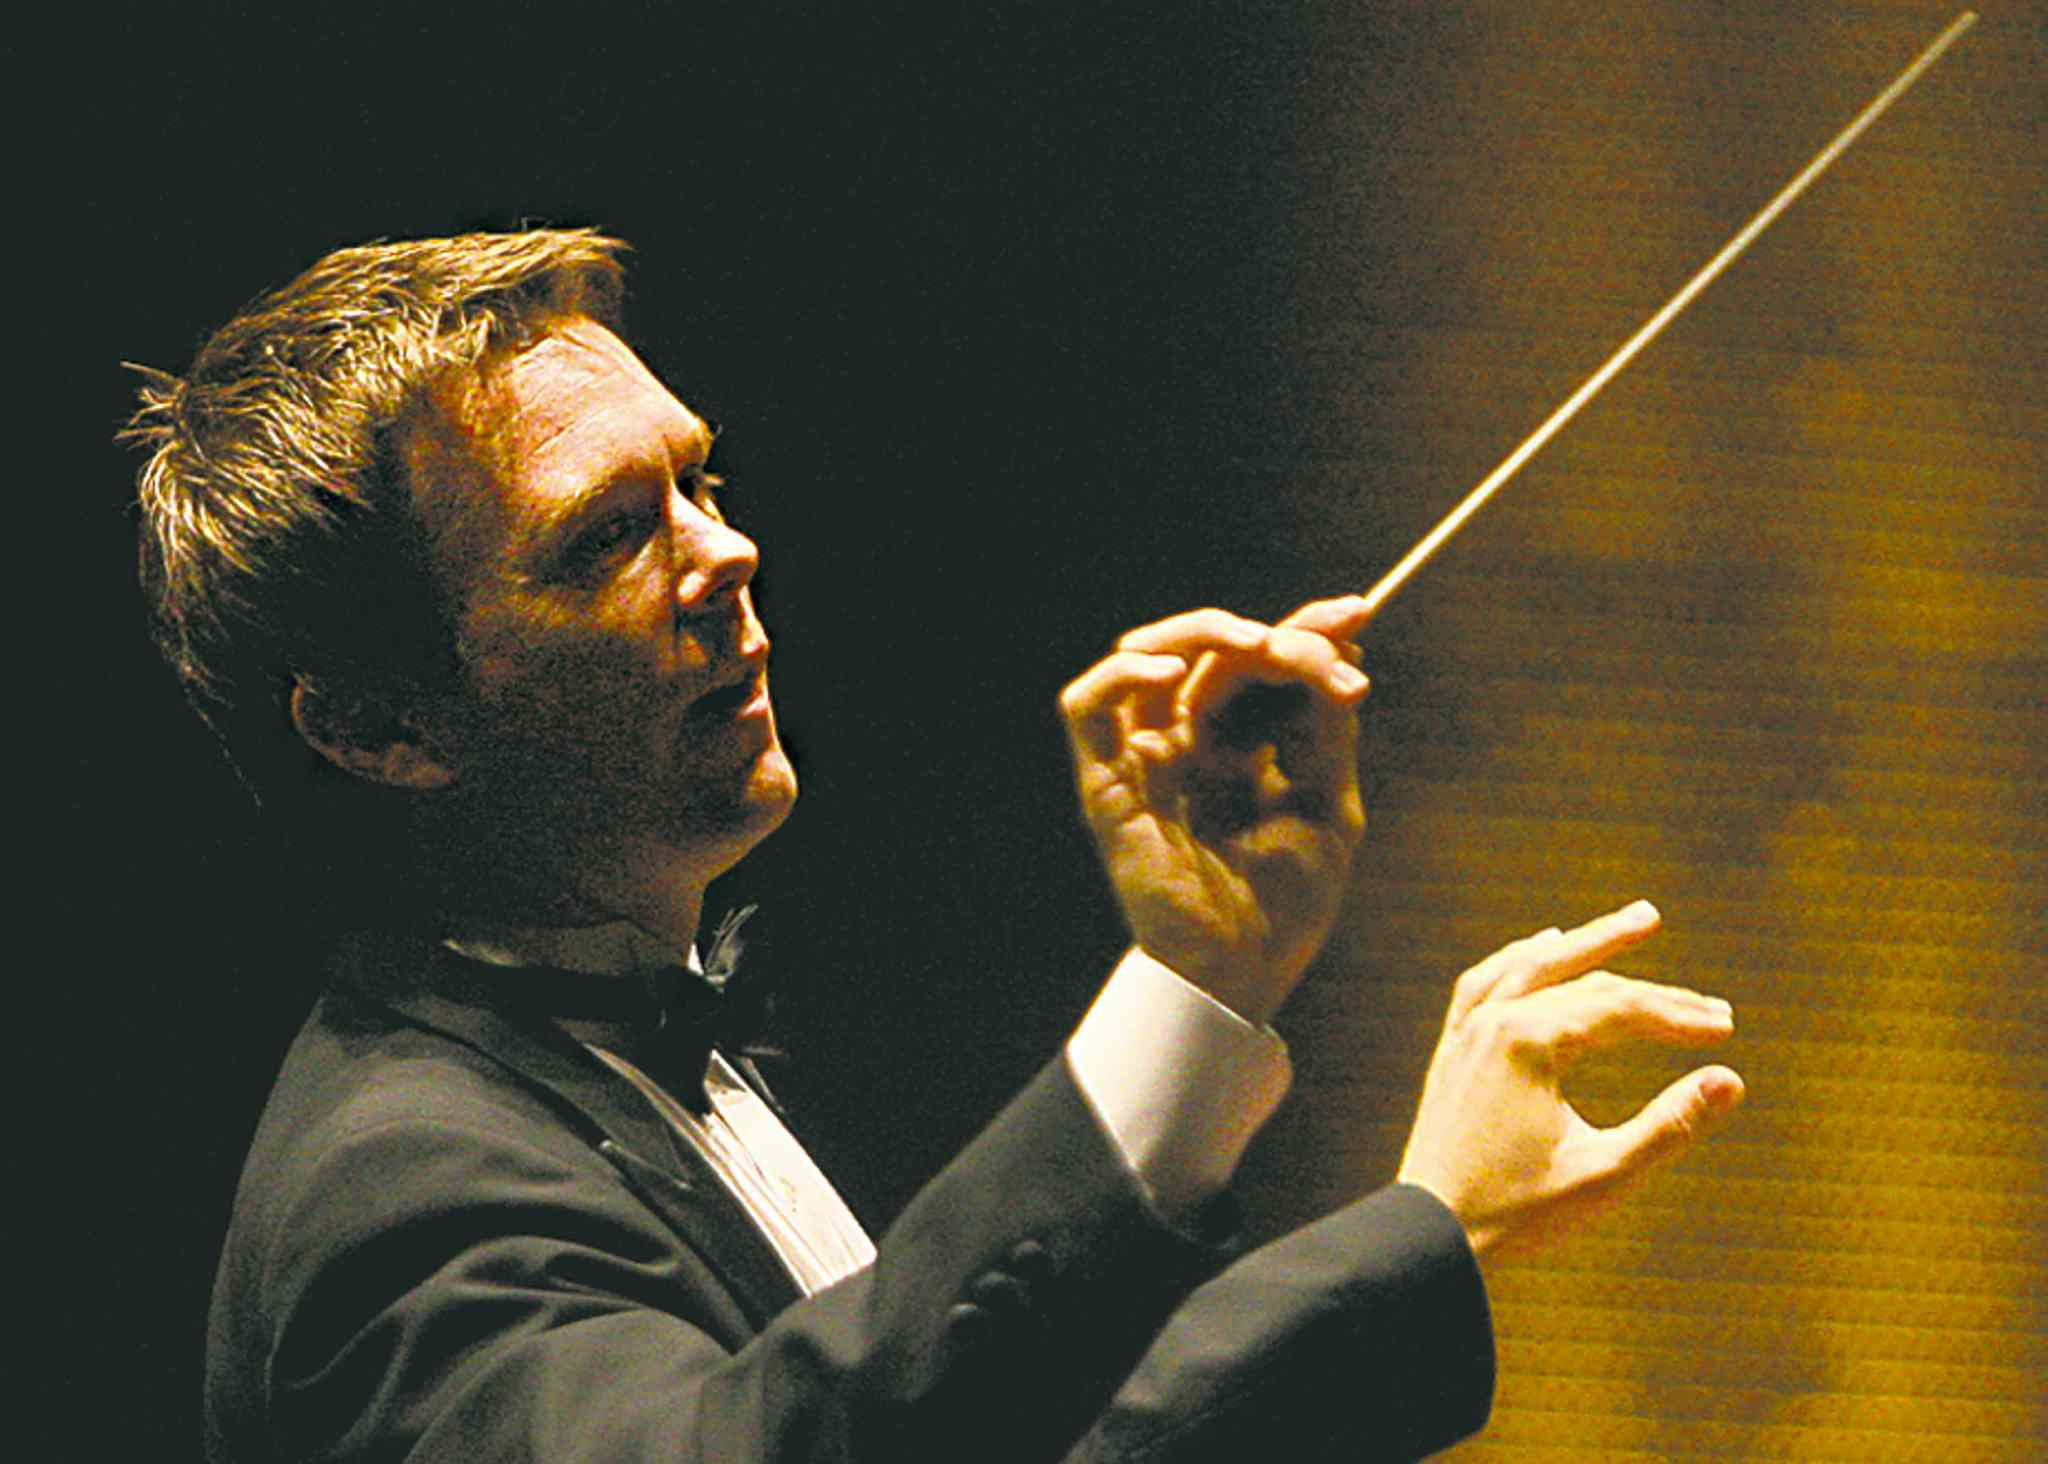 Alexander Mickelthwate's WSO will have plenty of fans from Manitoba in New York.